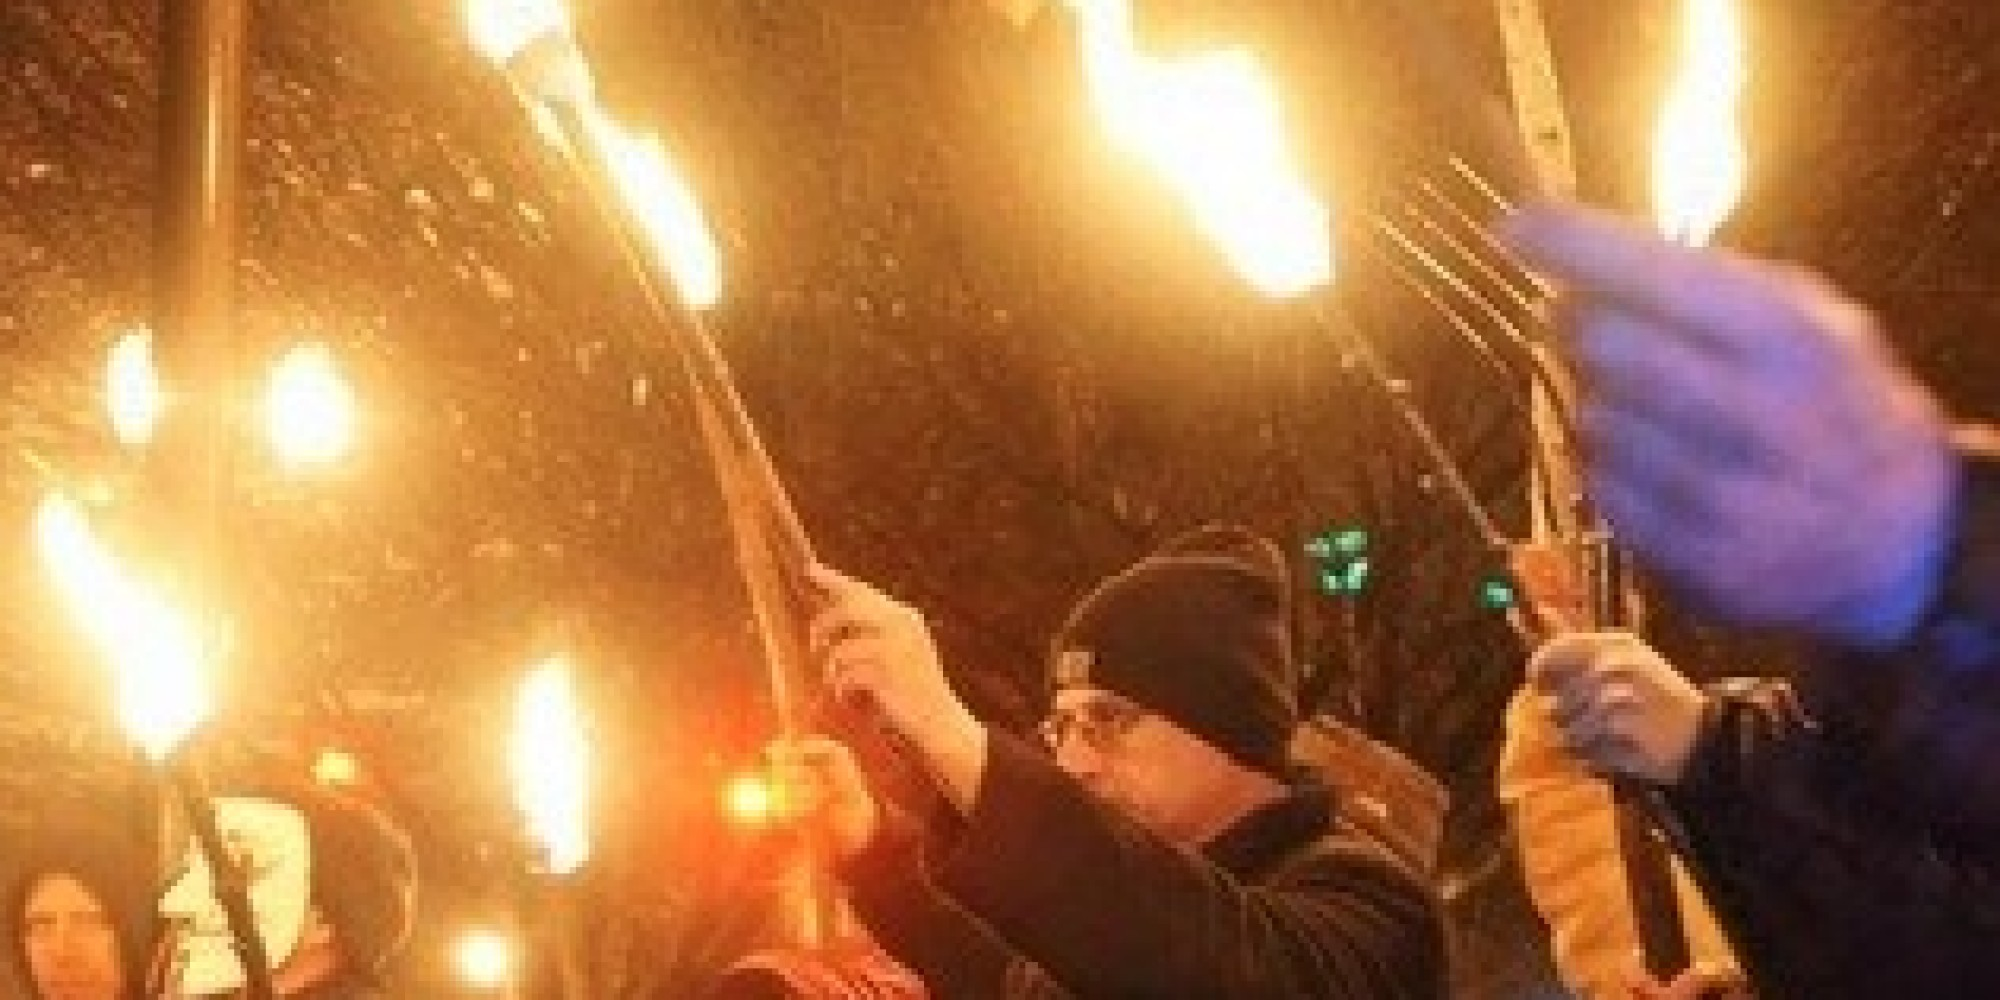 angry residents wave pitchforks  torches in protest of